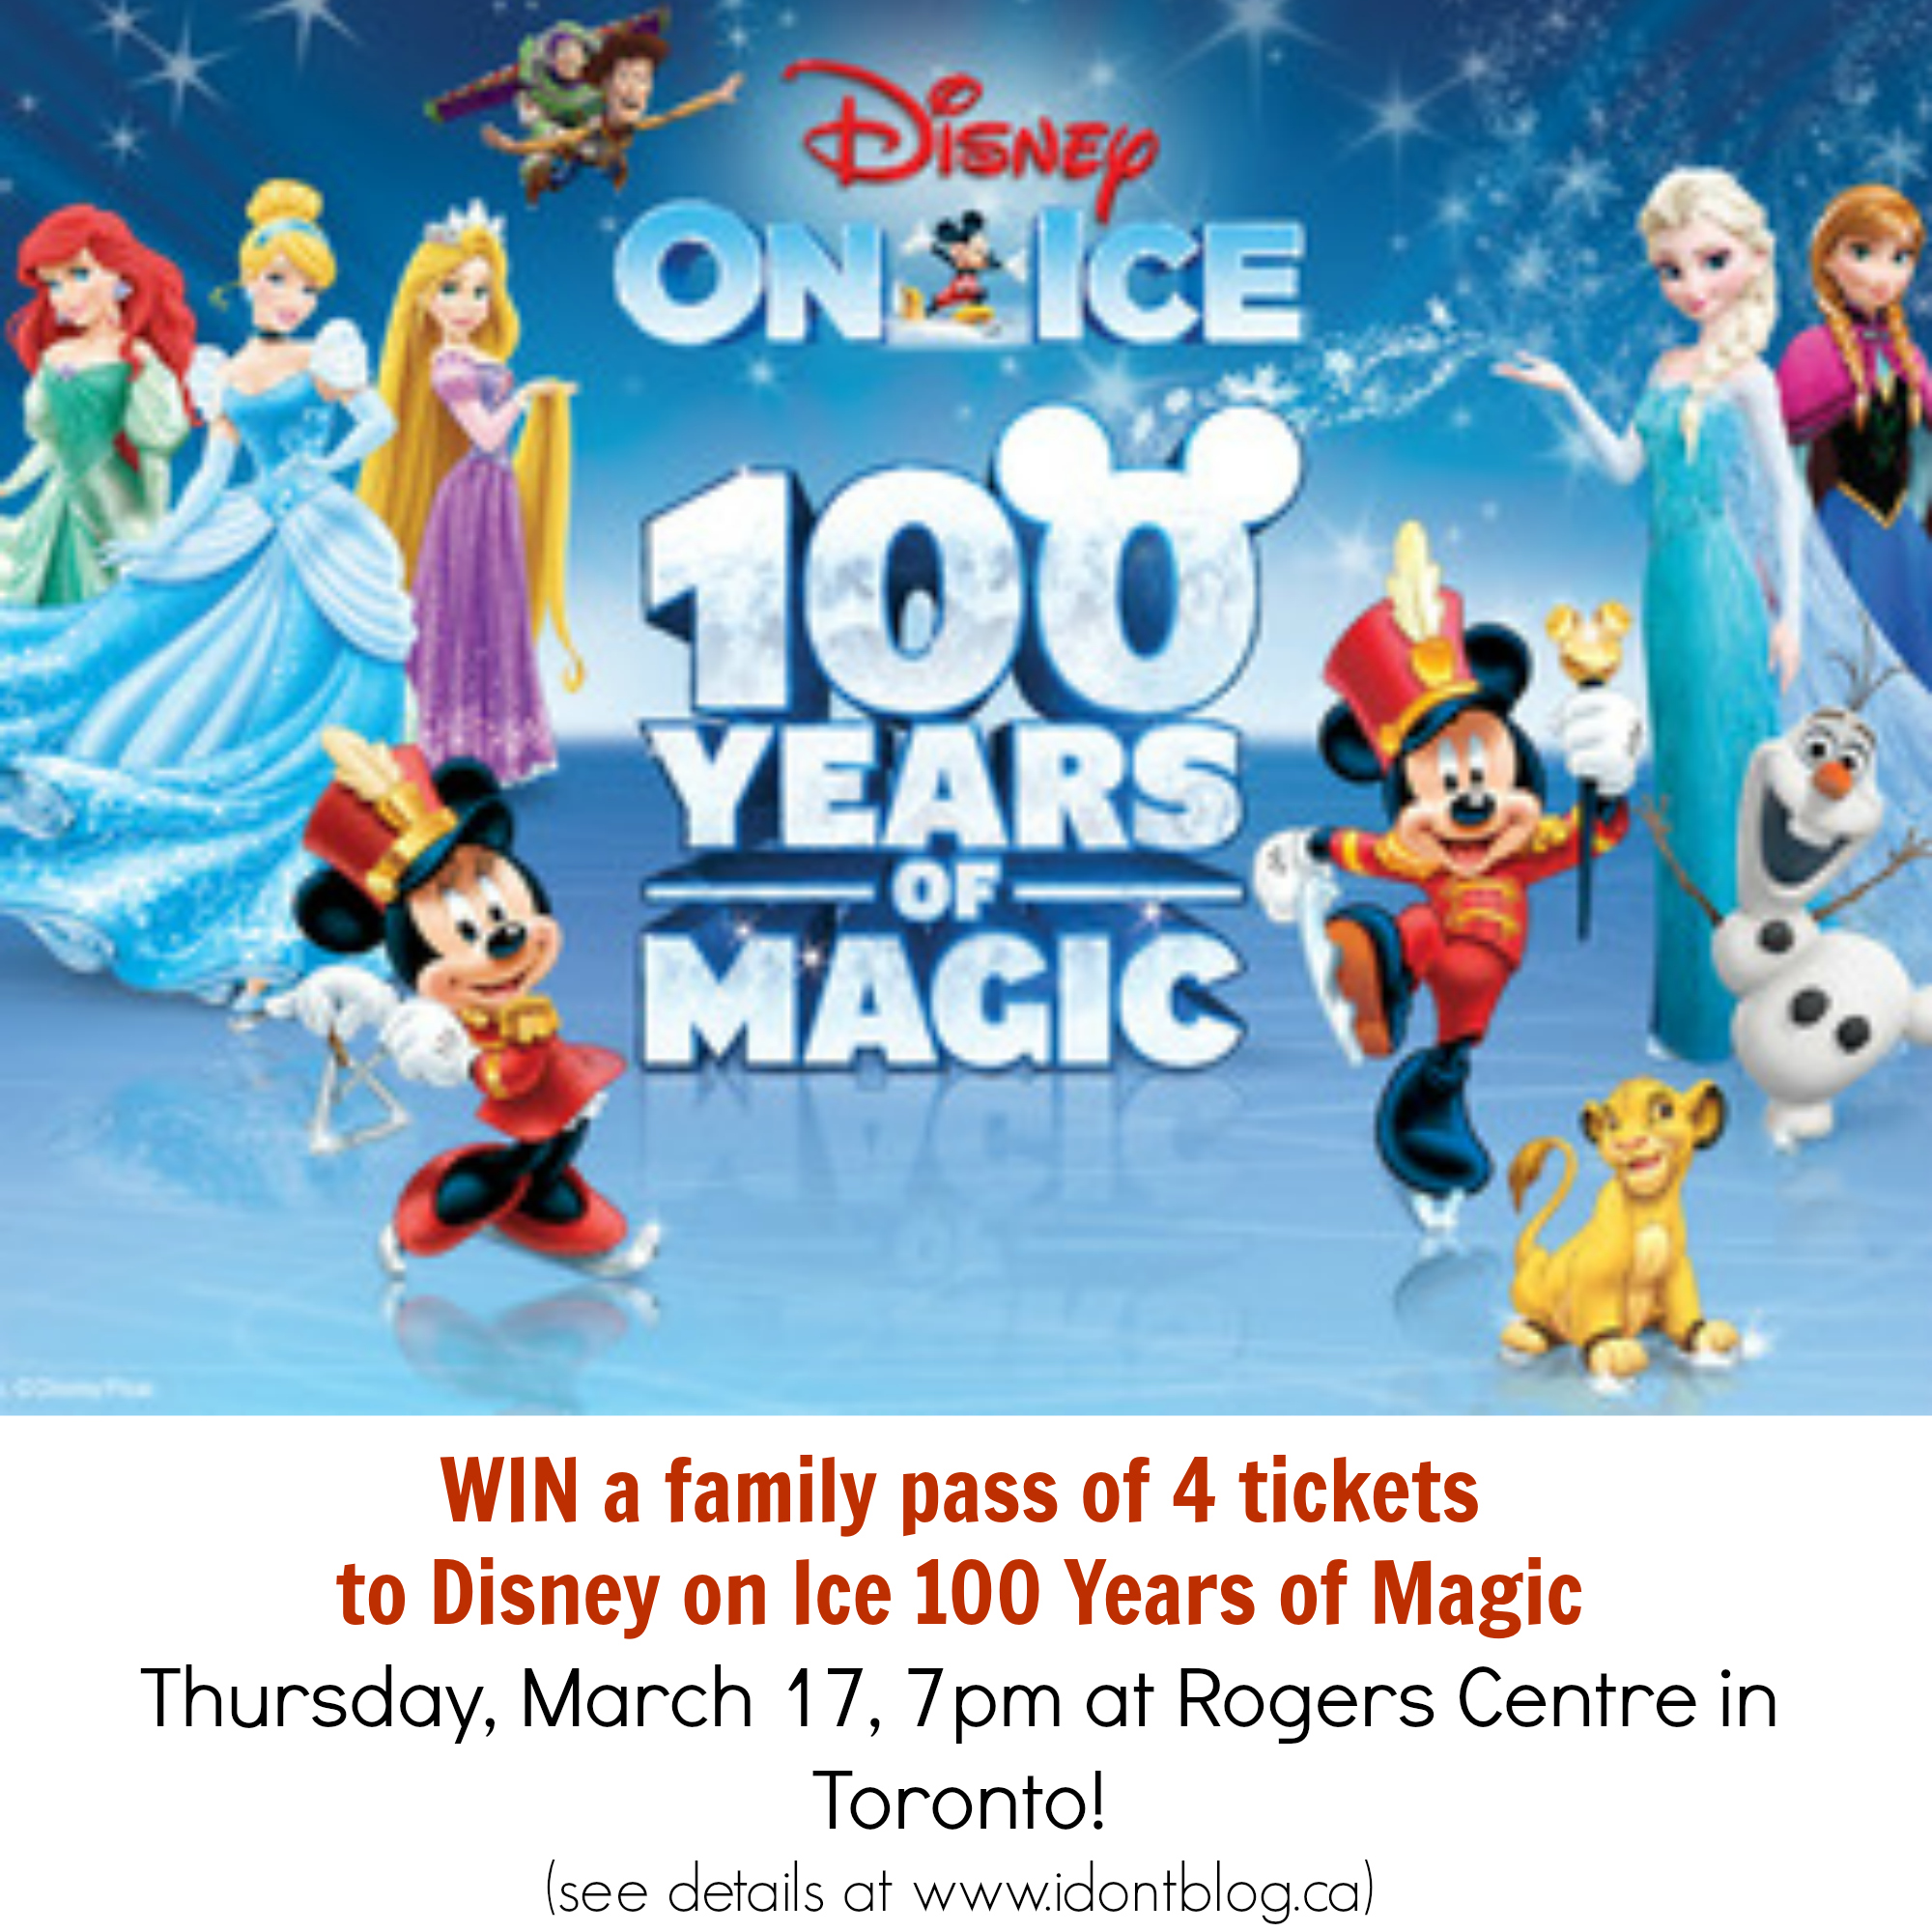 Disney On Ice Tickets Sell Tickets Join the celebration as more than 60 of Disney's unforgettable characters from 18 beloved stories come to life in Disney On Ice celebrates Years of Magic.